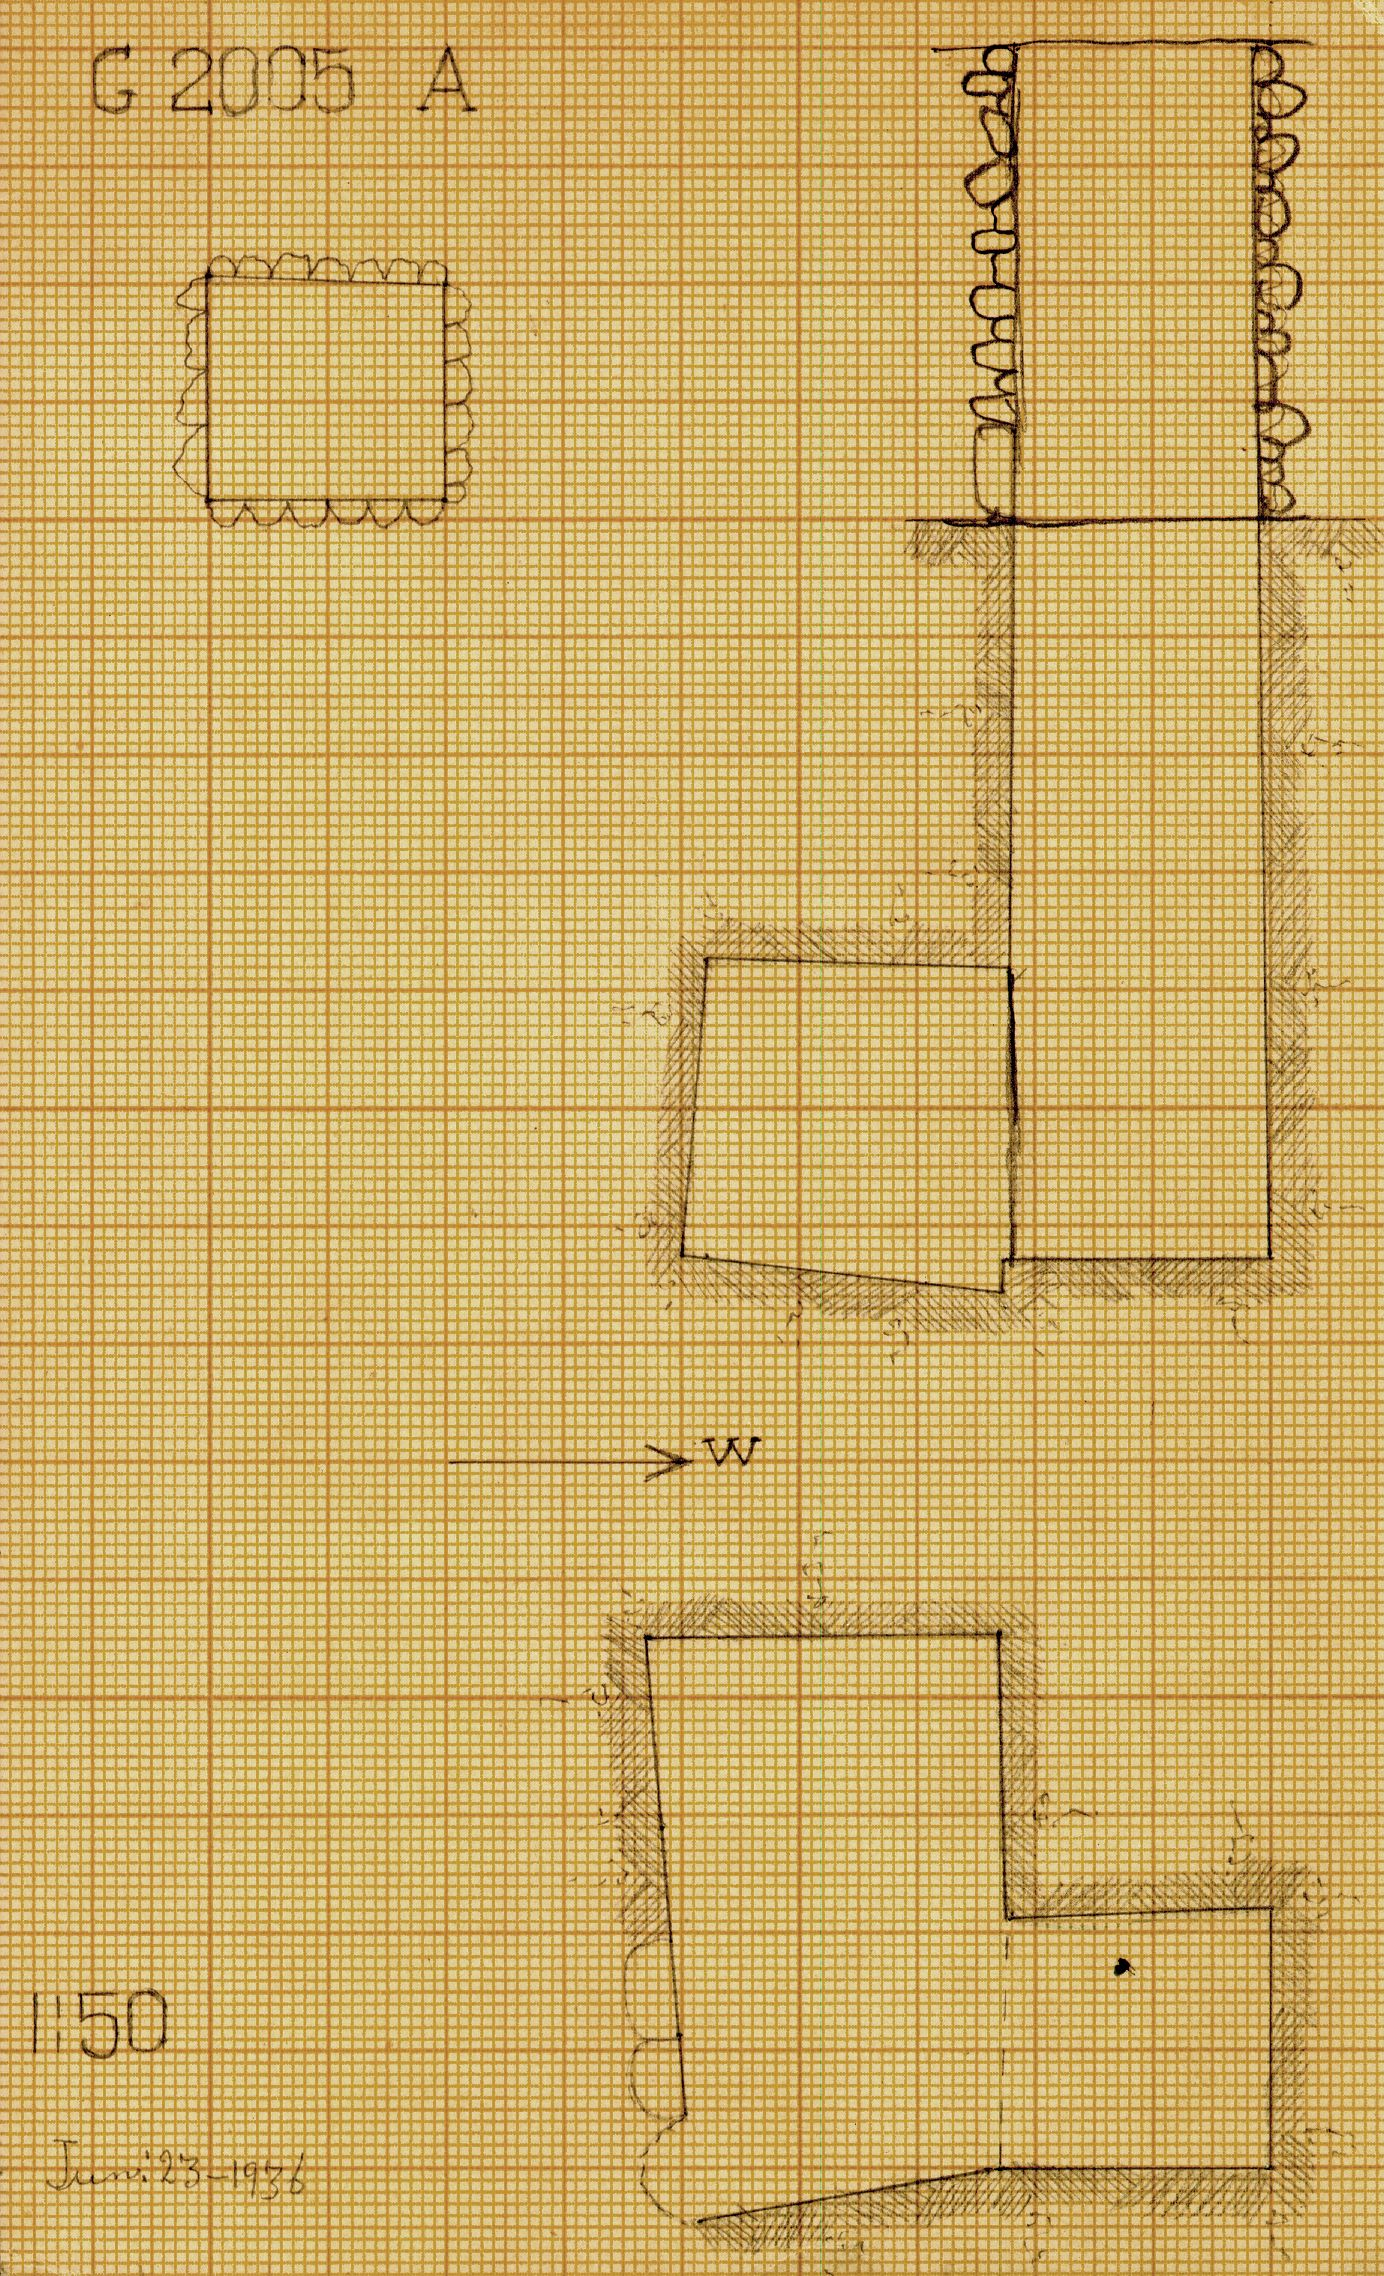 Maps and plans: G 2005, Shaft A